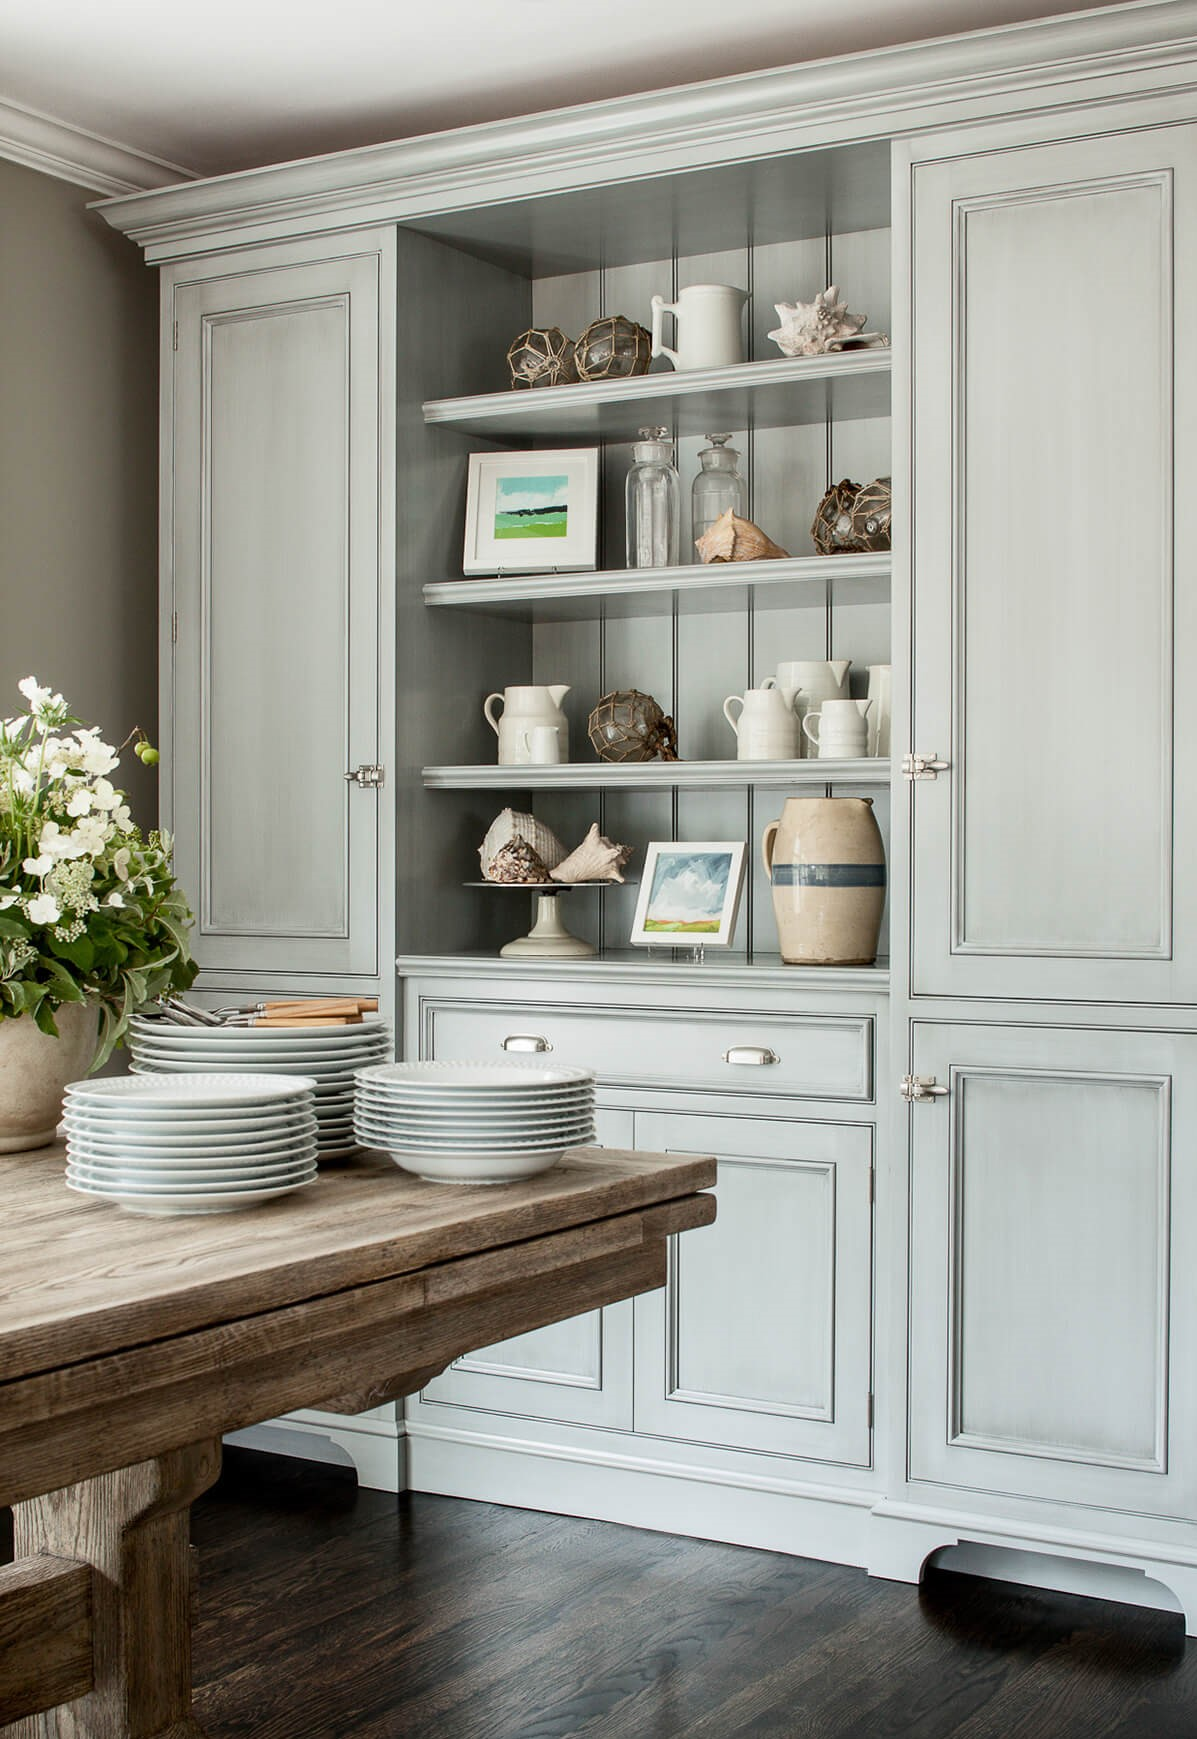 Dining Room Storage Ideas To Add Function and Style